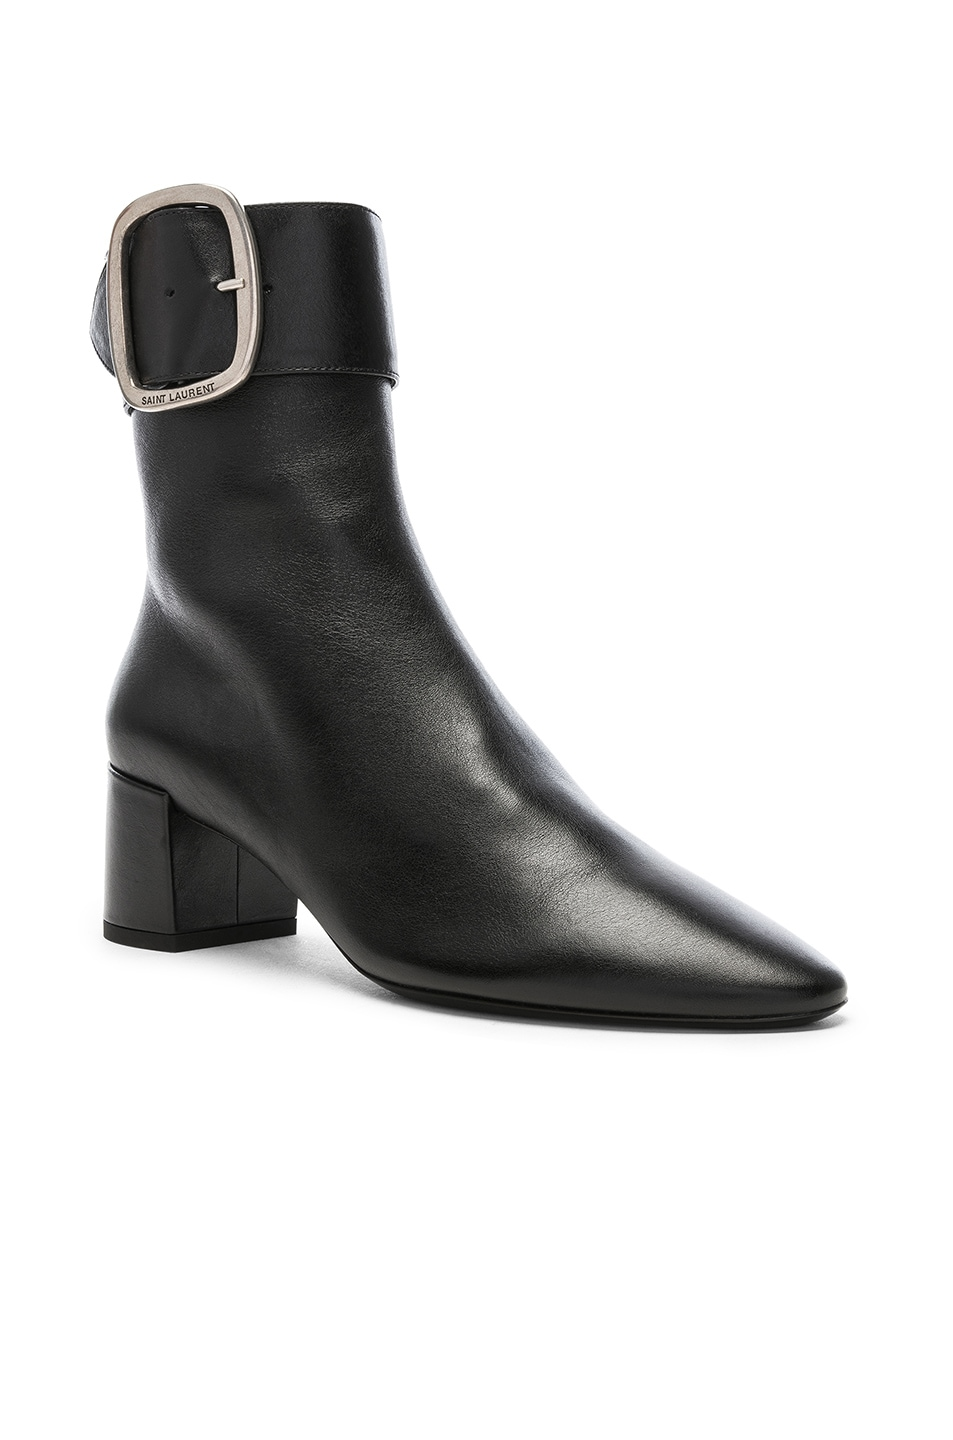 Image 2 of Saint Laurent Leather Joplin Buckle Ankle Boots in Black